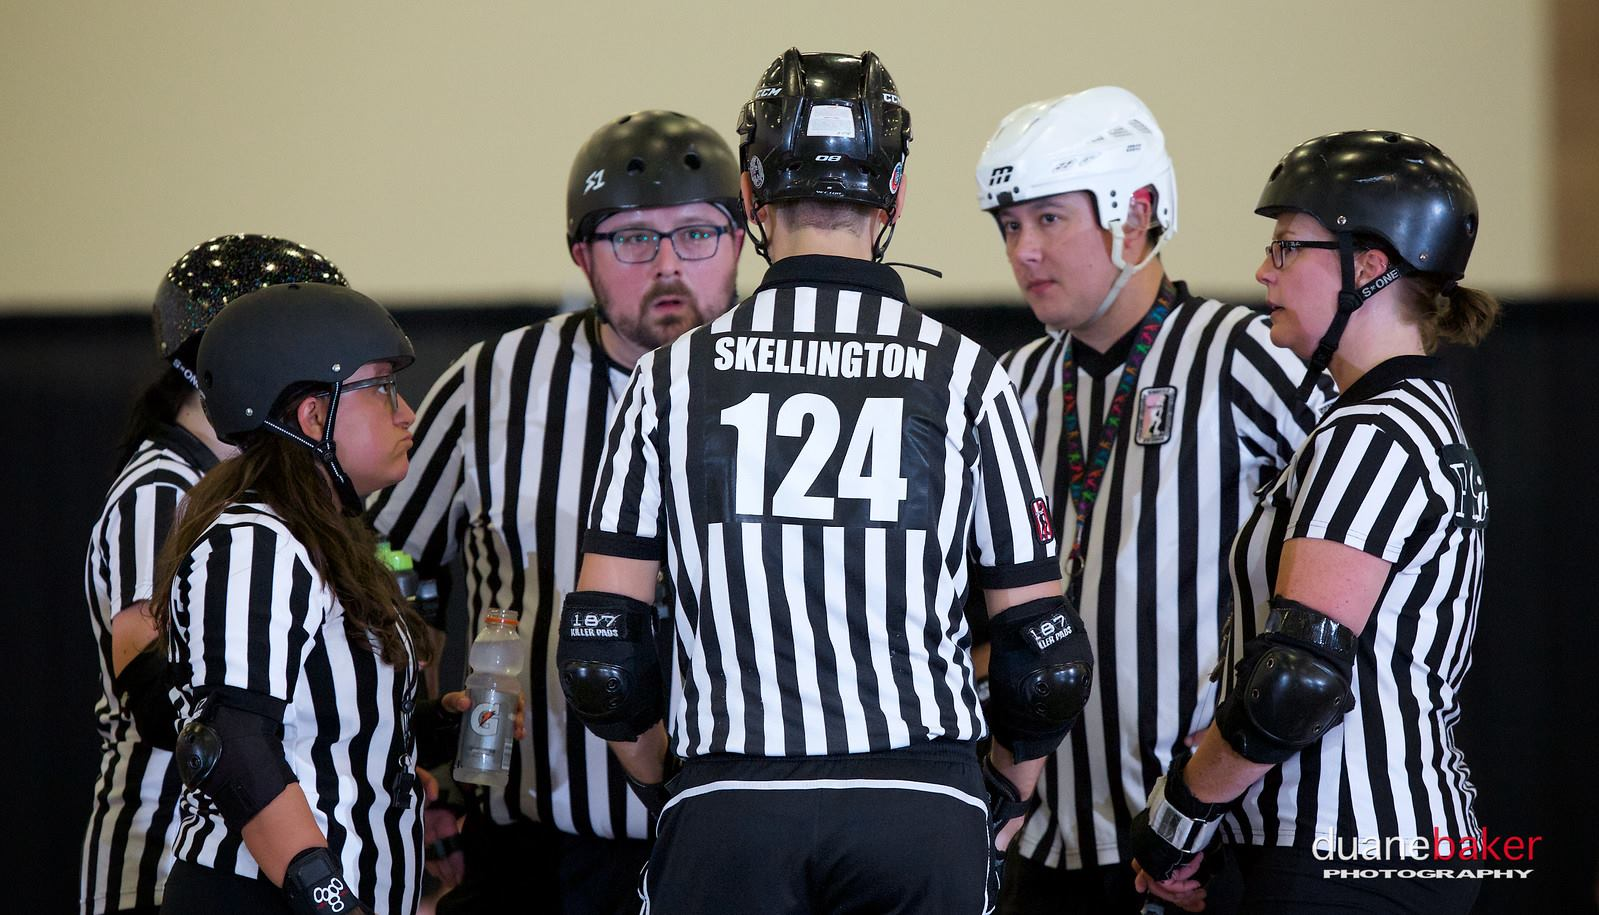 Thank you officials - Photo by Duane Baker Photography